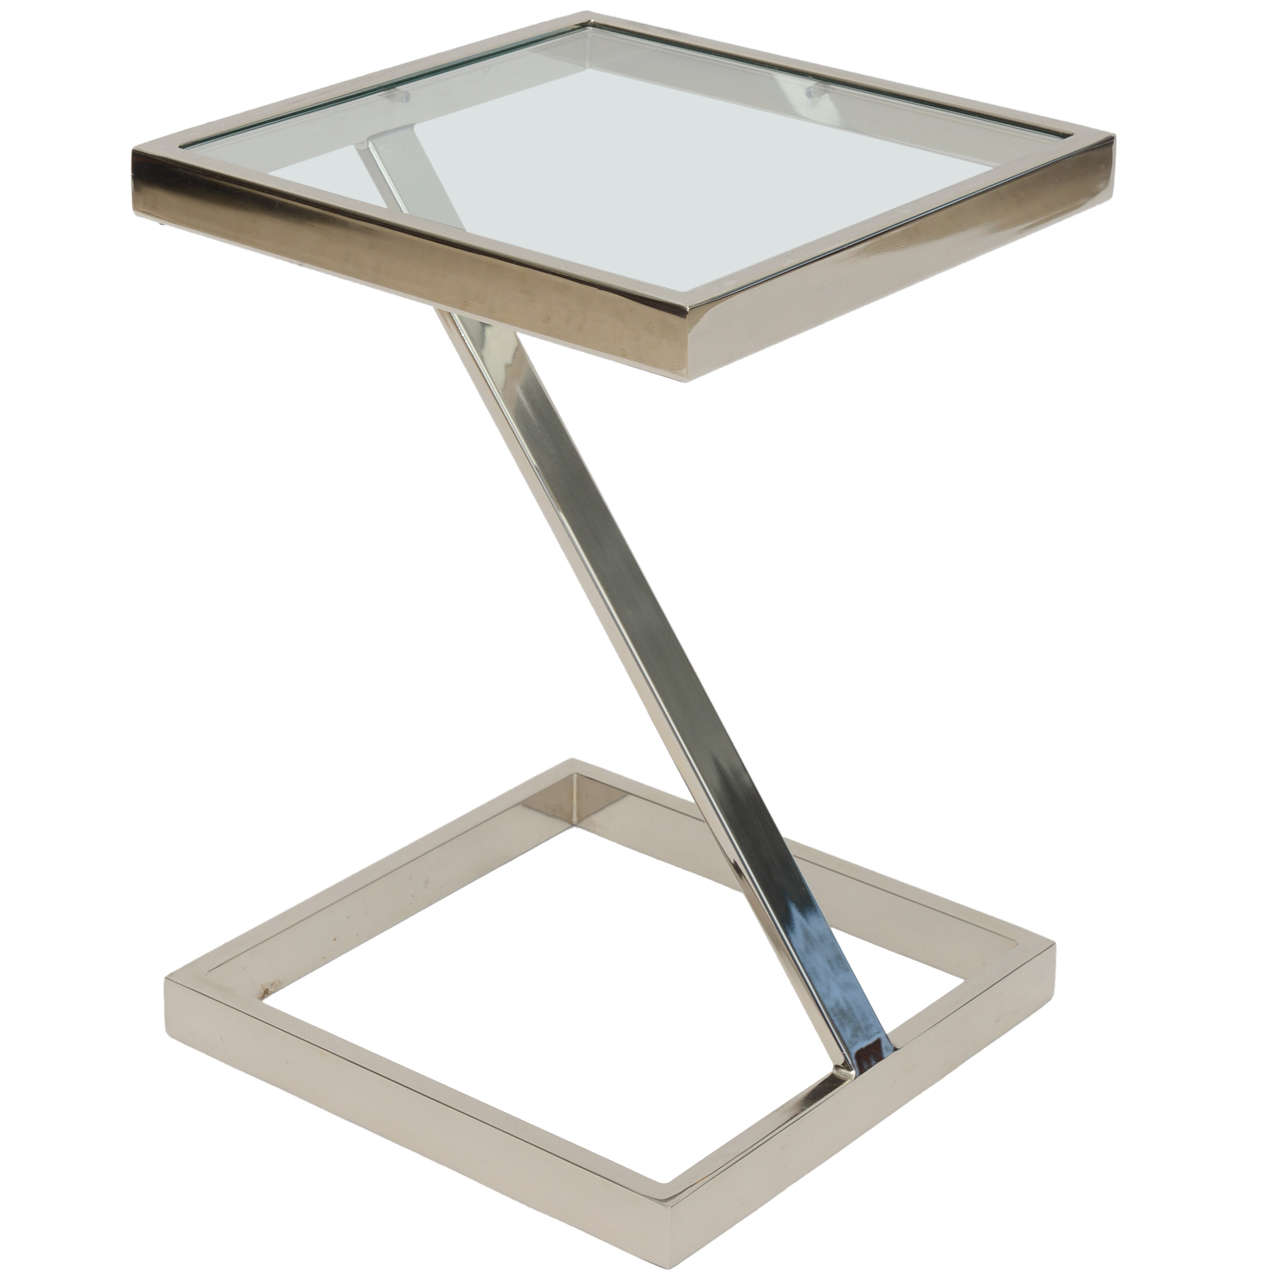 american modern chrome and glass side table pace collection at  - american modern chrome and glass side table pace collection